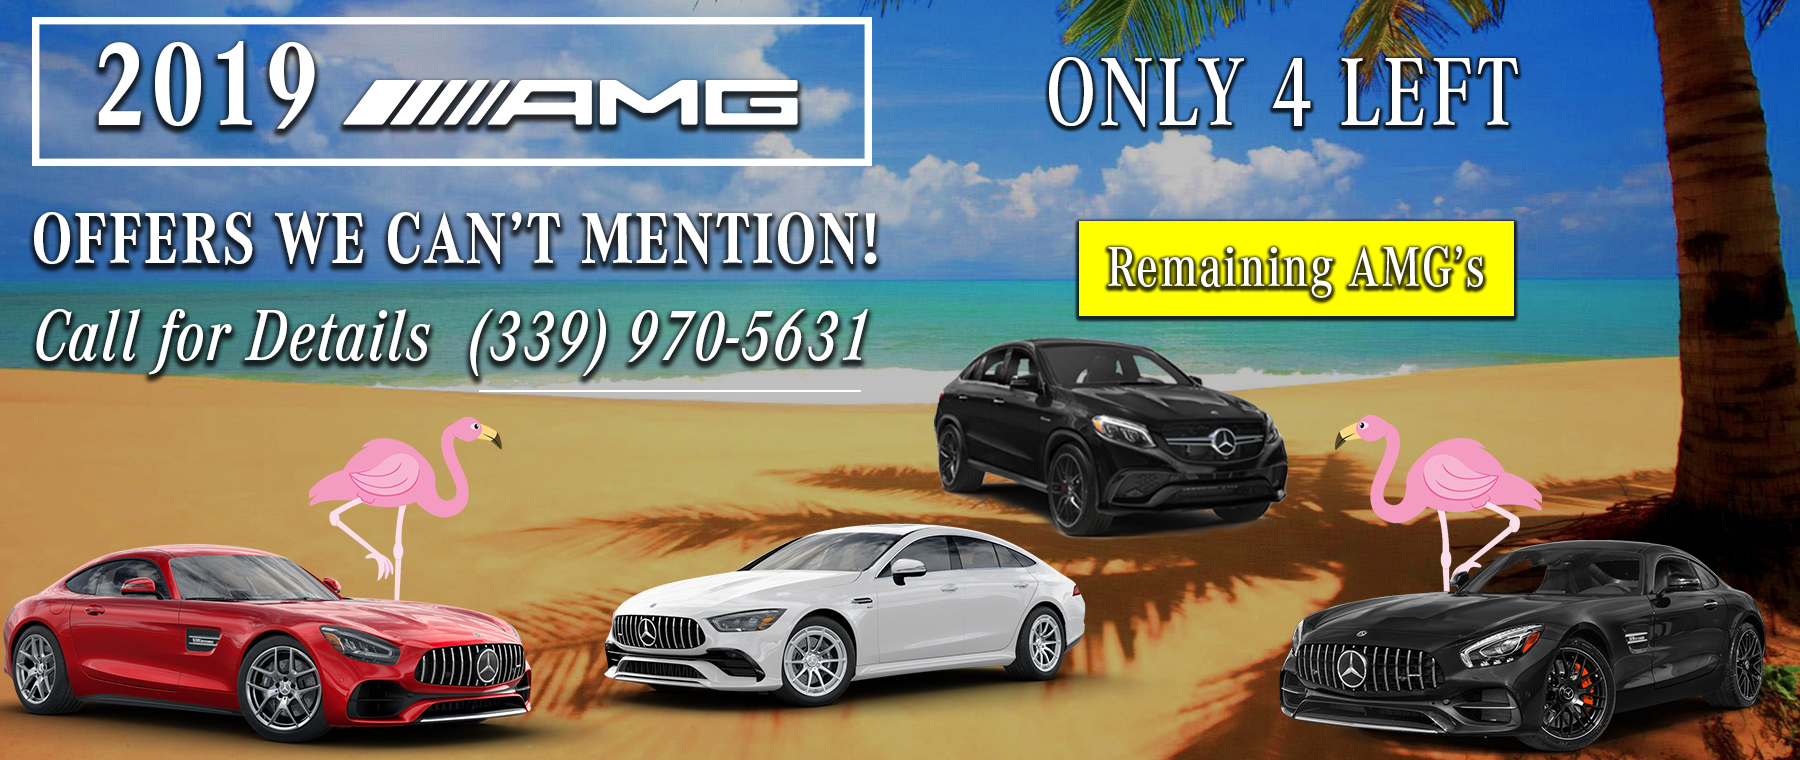 1800×760 – 2019 AMG® Remaining Banner – UPDATED 2